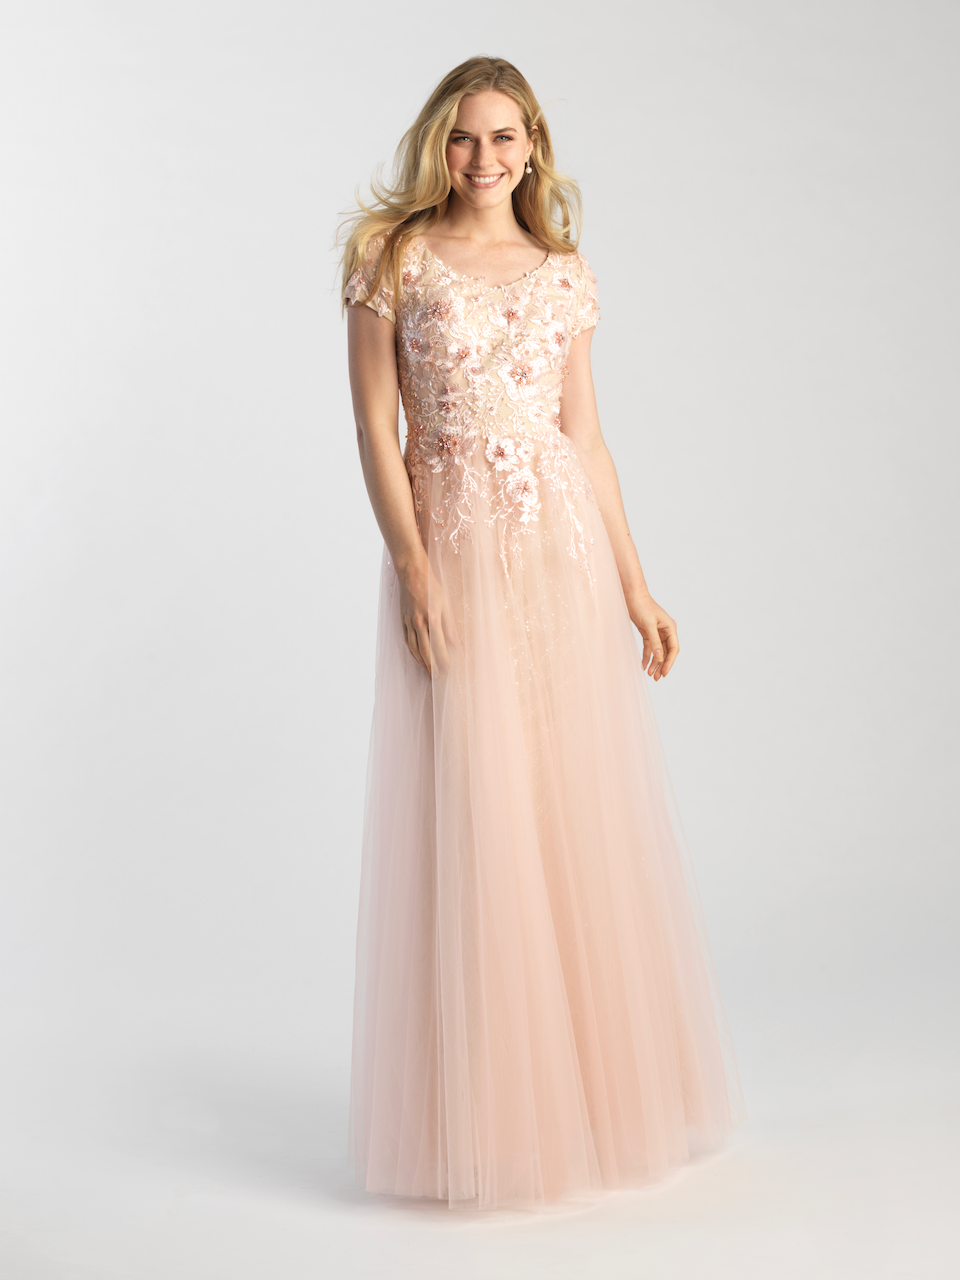 MJ 20-505 pink modest prom dress with sleeves lace LDS formal gown for plus size